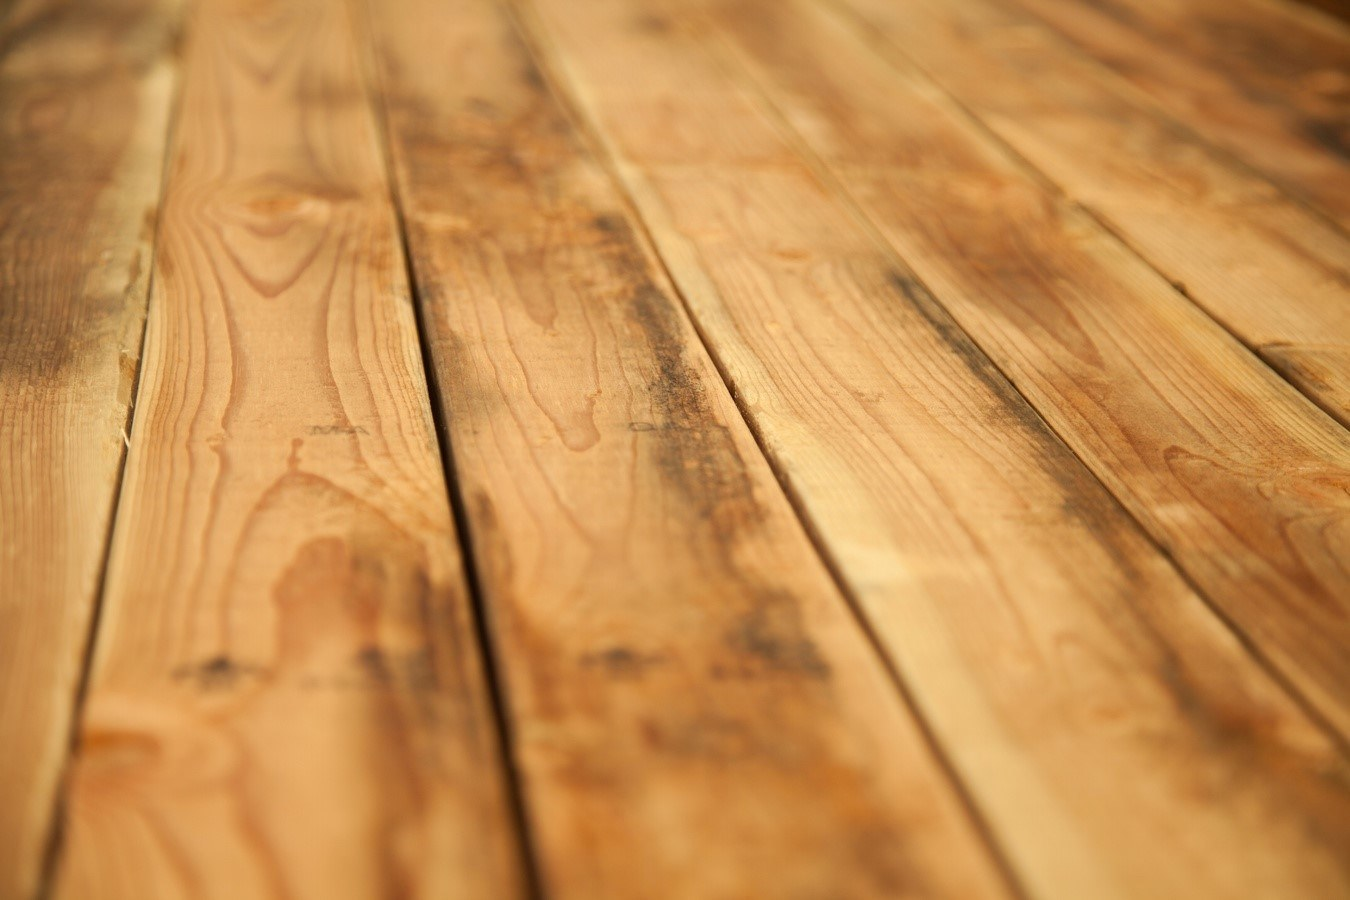 The Best Way to Care for Your Hardwood Floors In Winter